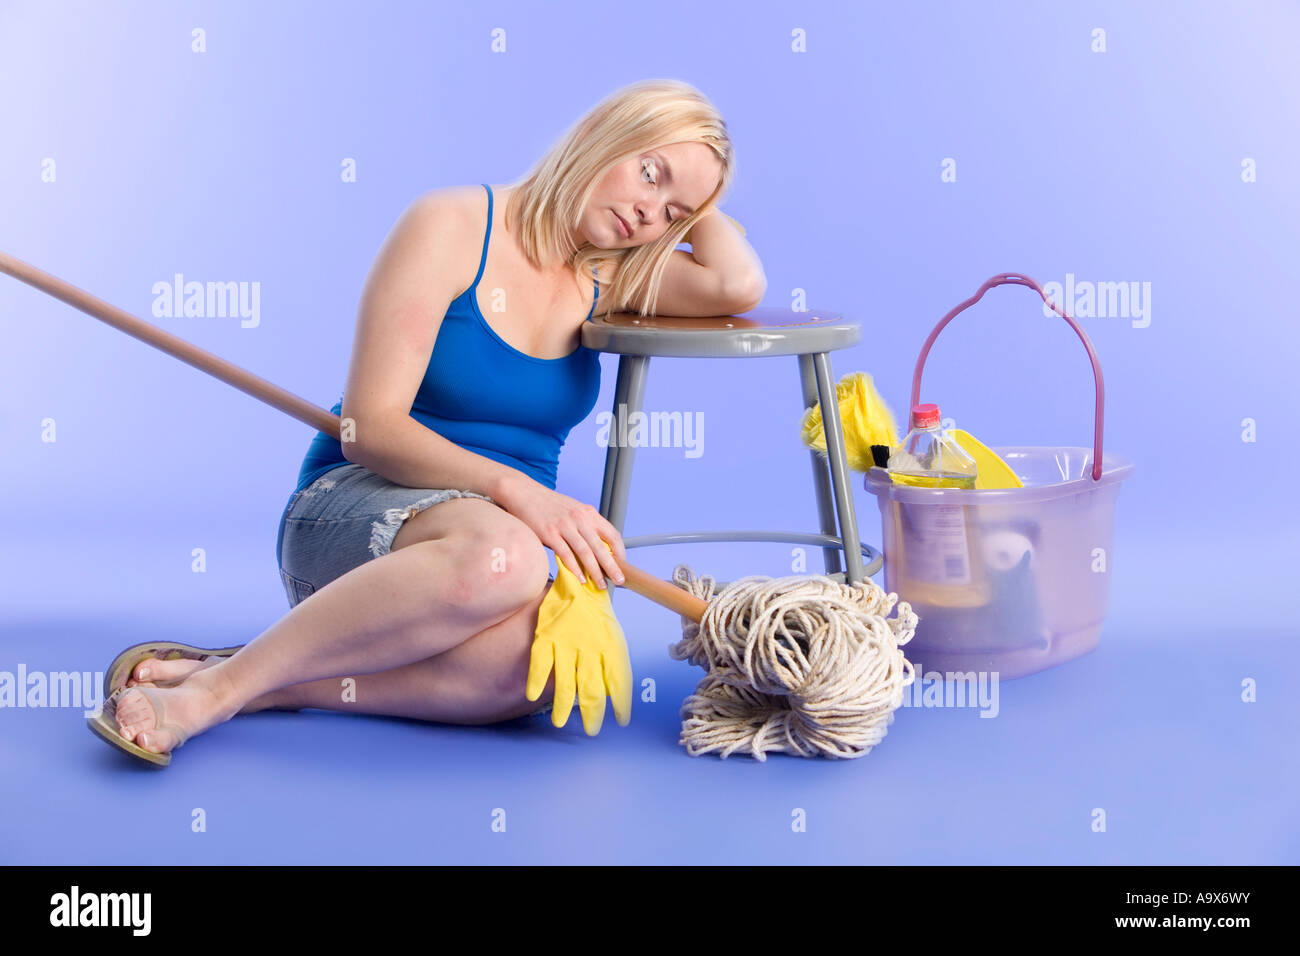 woman tired and sleeping after household chores and cleaning - Stock Image